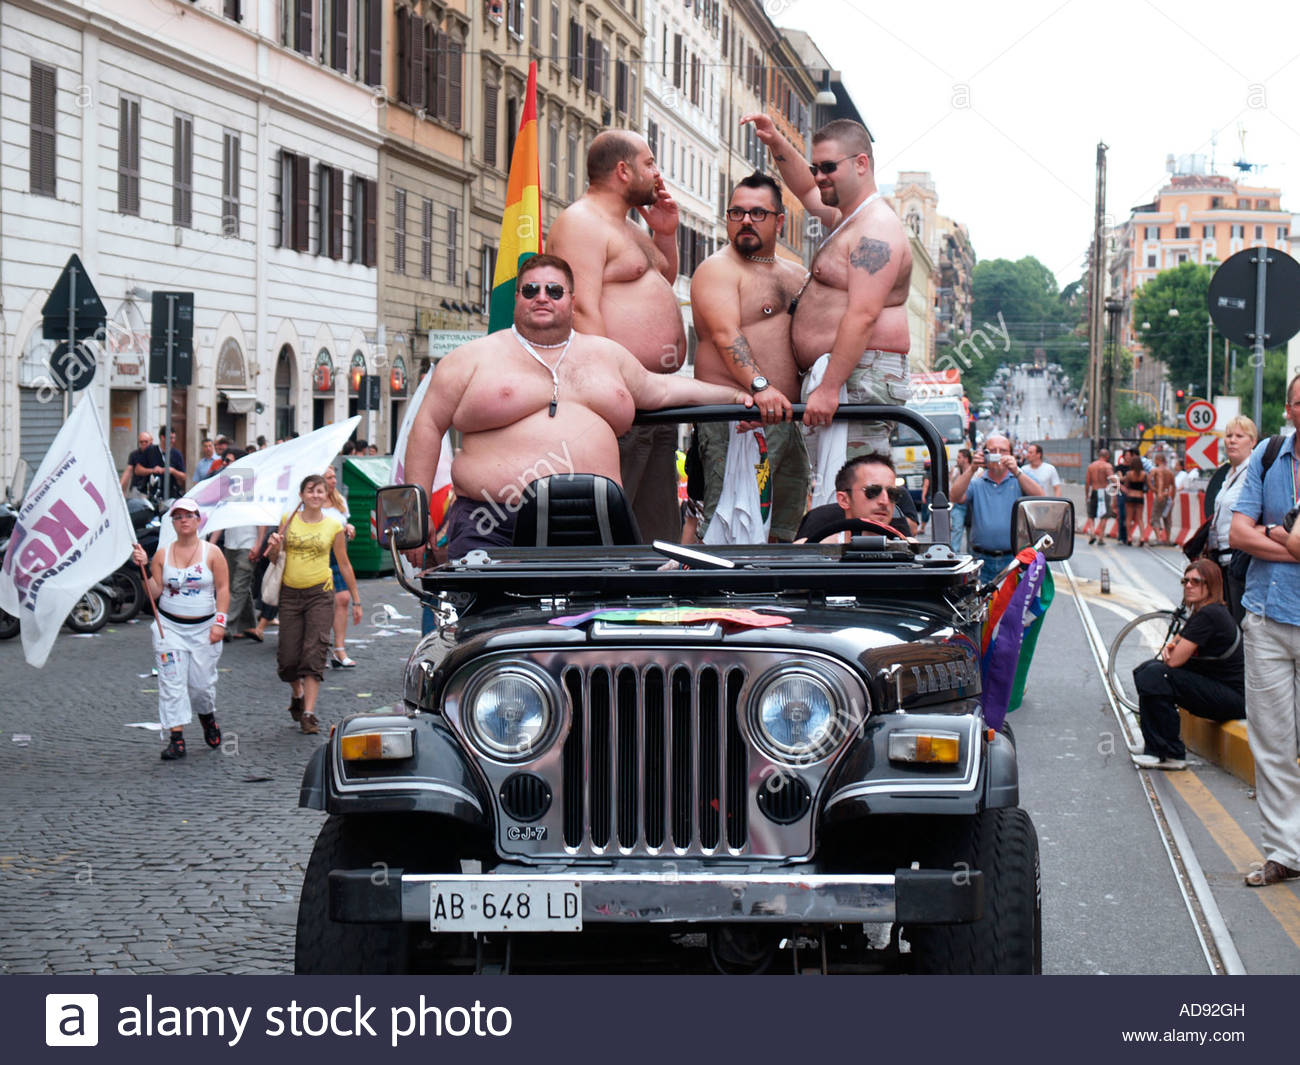 overweight-gay-men-on-jeep-at-gay-pride-rome-2007-AD92GH.jpg